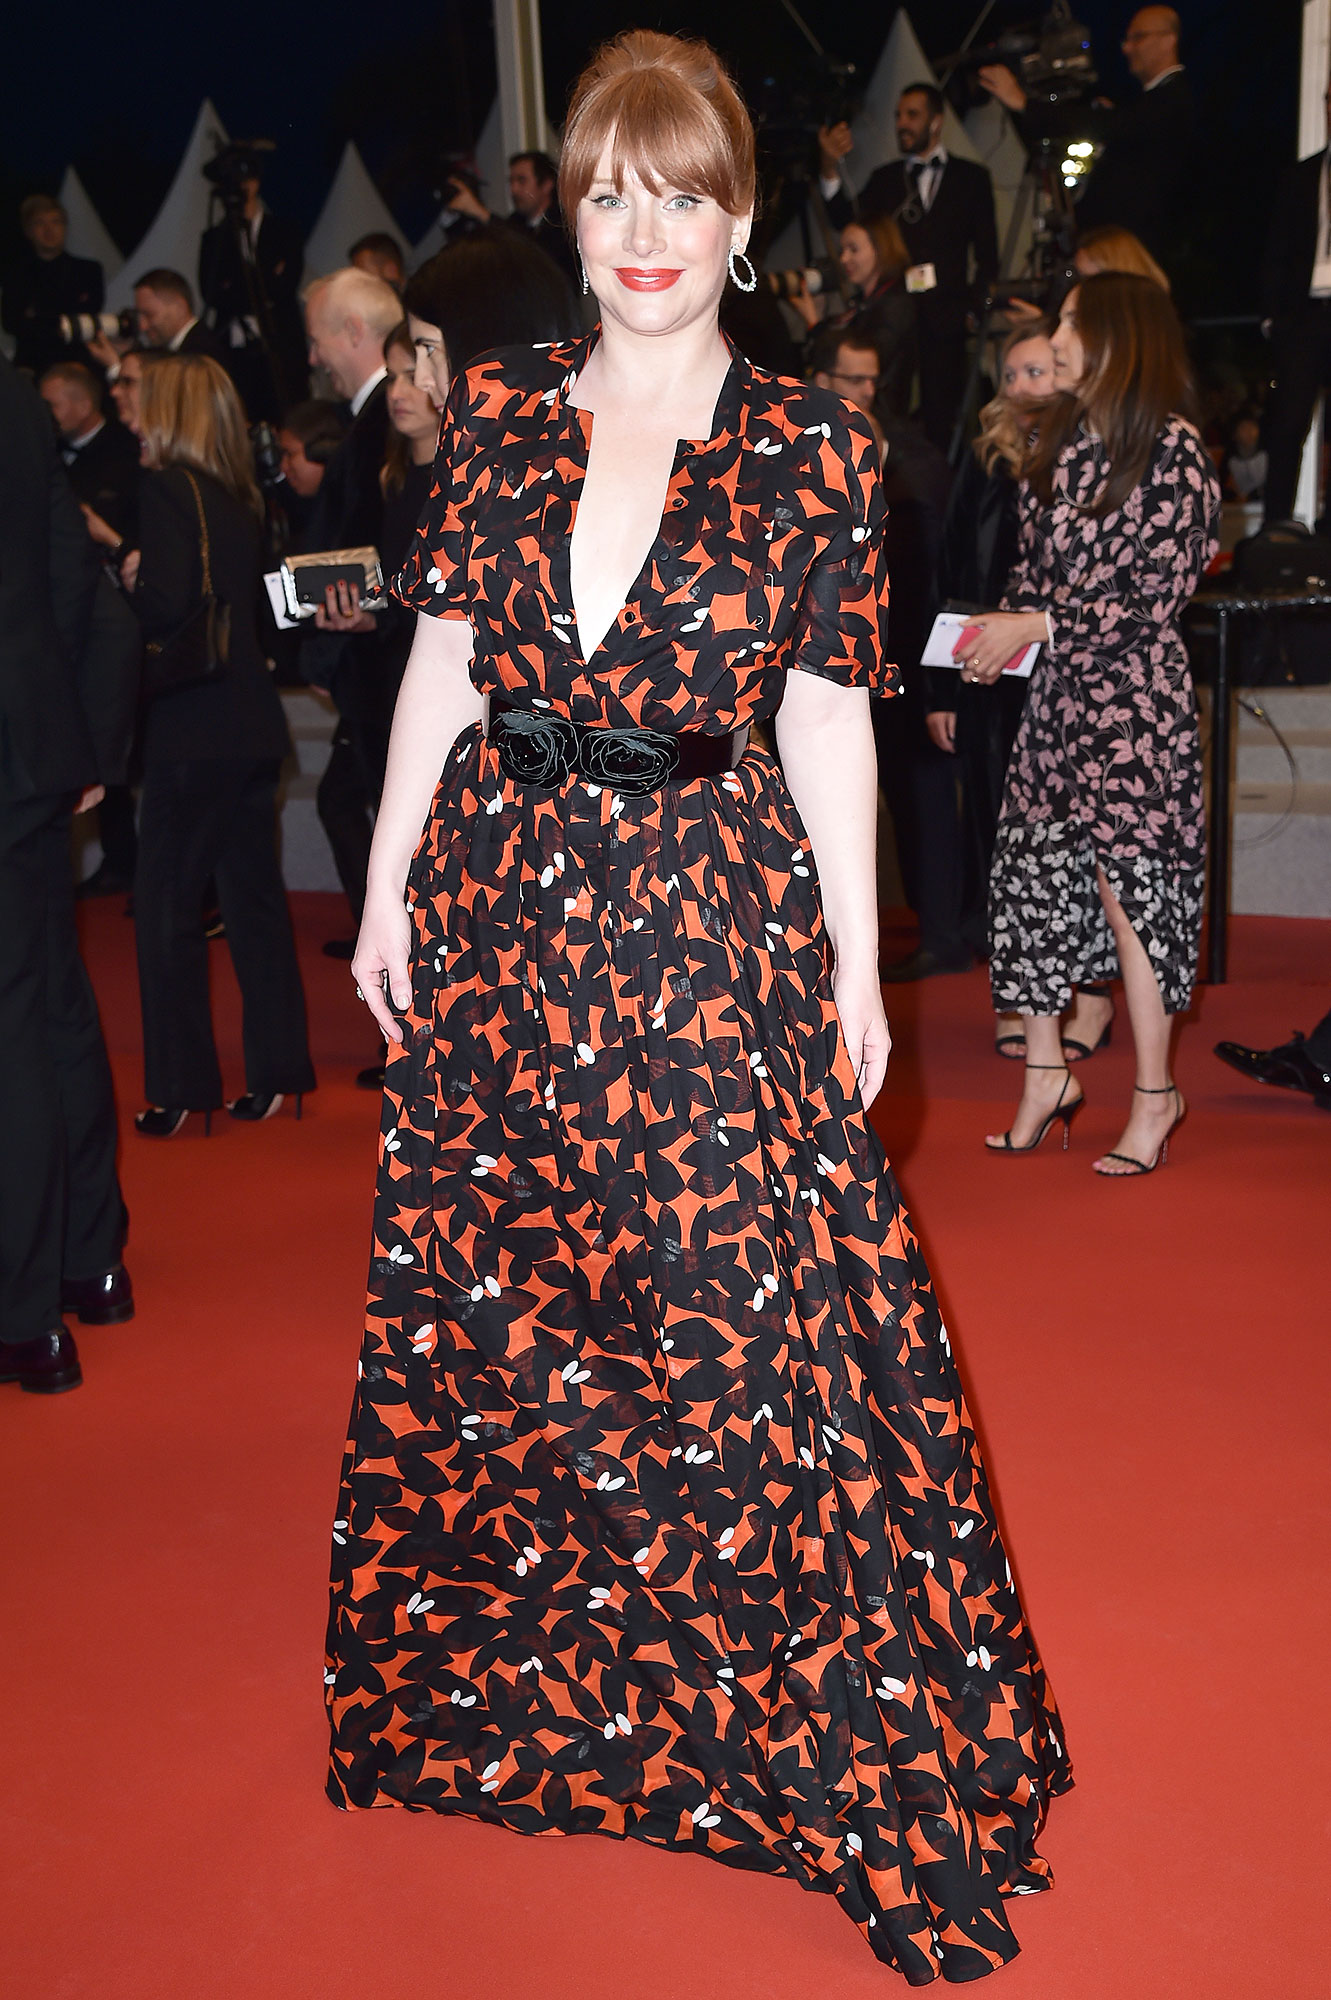 Bryce Dallas Howard Cannes Film Festival Real Real Consignment Red Black Dress - In need of a slightly more glamorous ensemble for the film's premiere on Thursday, May 16, the Rocketman star found a black-and-red vintage Gucci maxidress on The RealReal that she cinched with a Reem Acra belt. She shared on social media that the cotton fabric kept her cool on the steamy South of France red carpet, while Prada platforms and Chopard jewels completed the look.